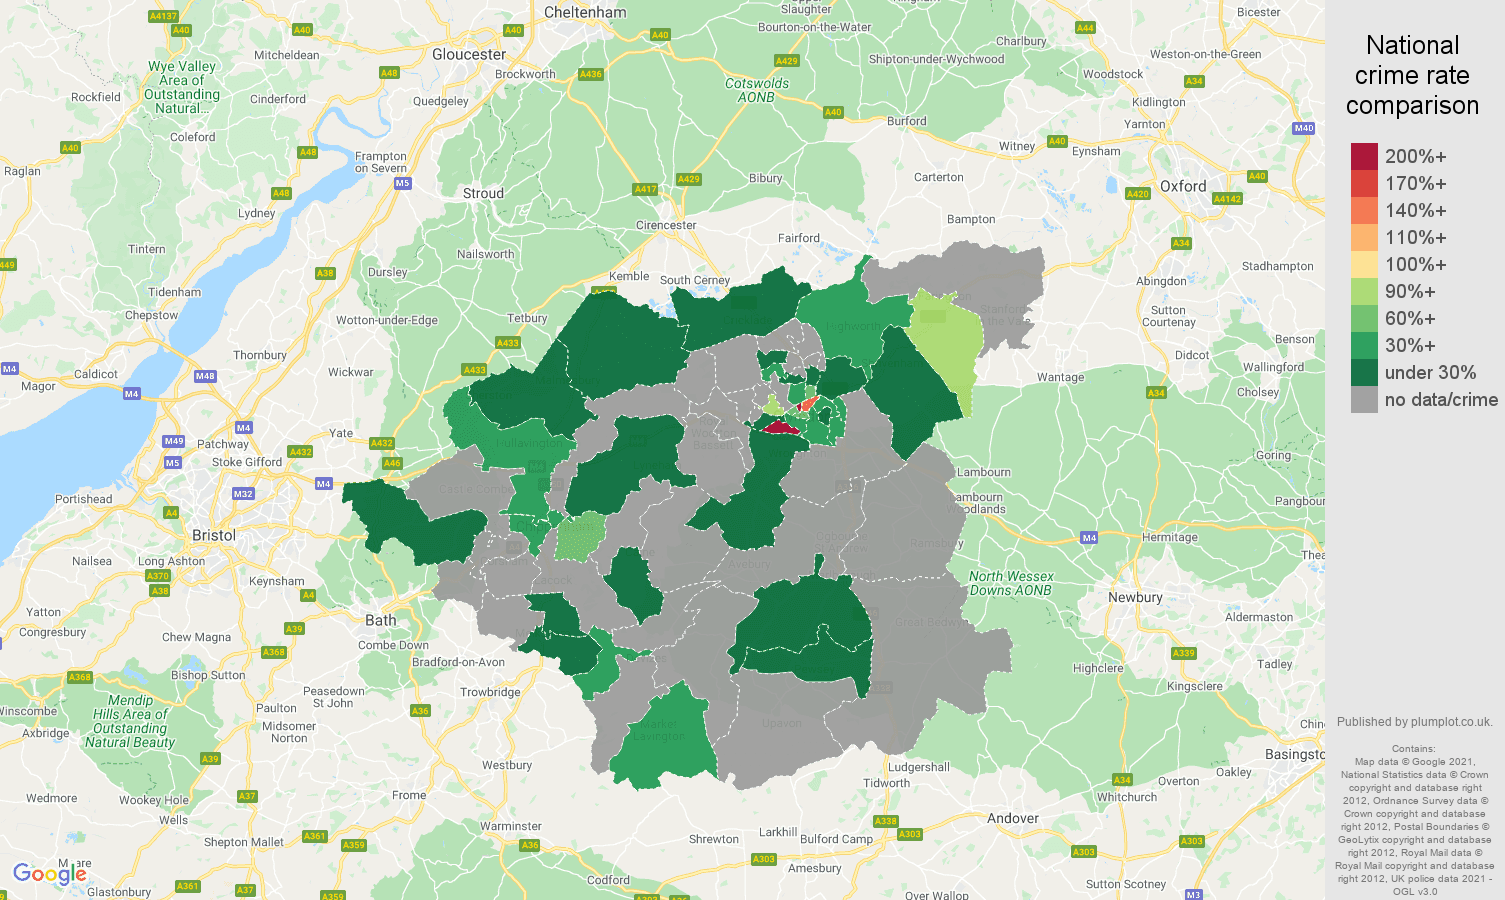 Swindon theft from the person crime rate comparison map